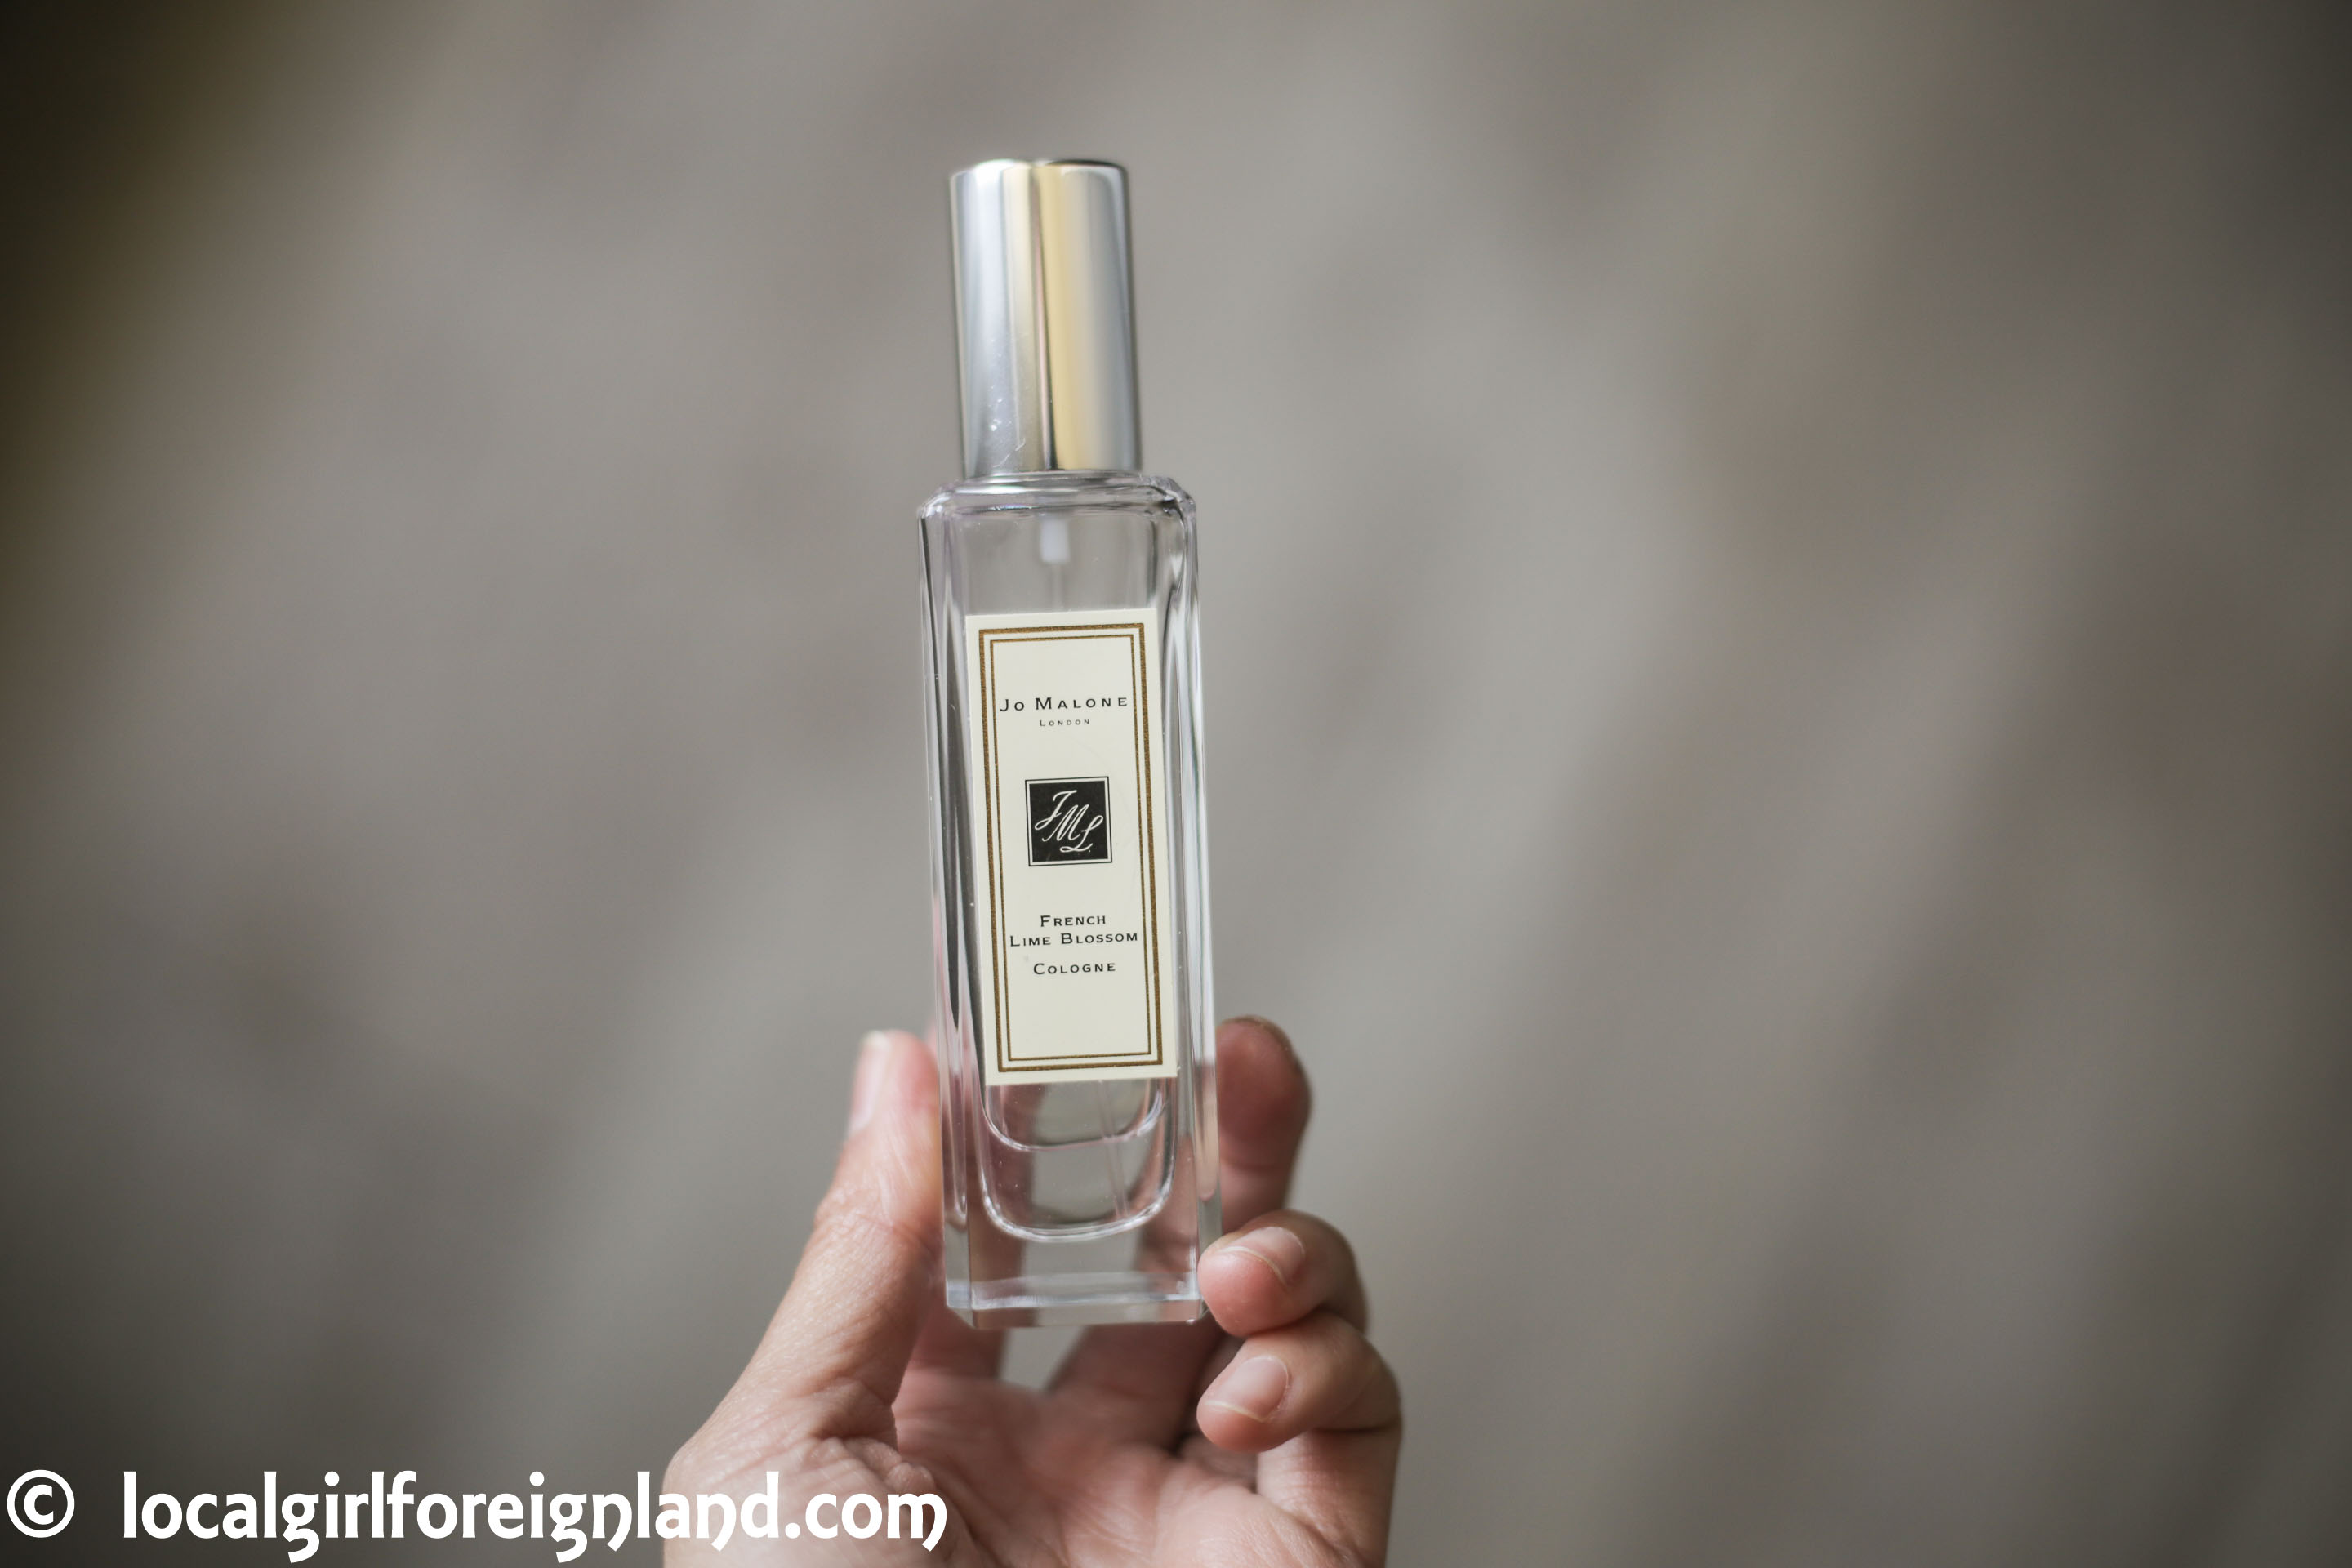 project-pan-jo-malone-french-lime-blossom-6978.JPG